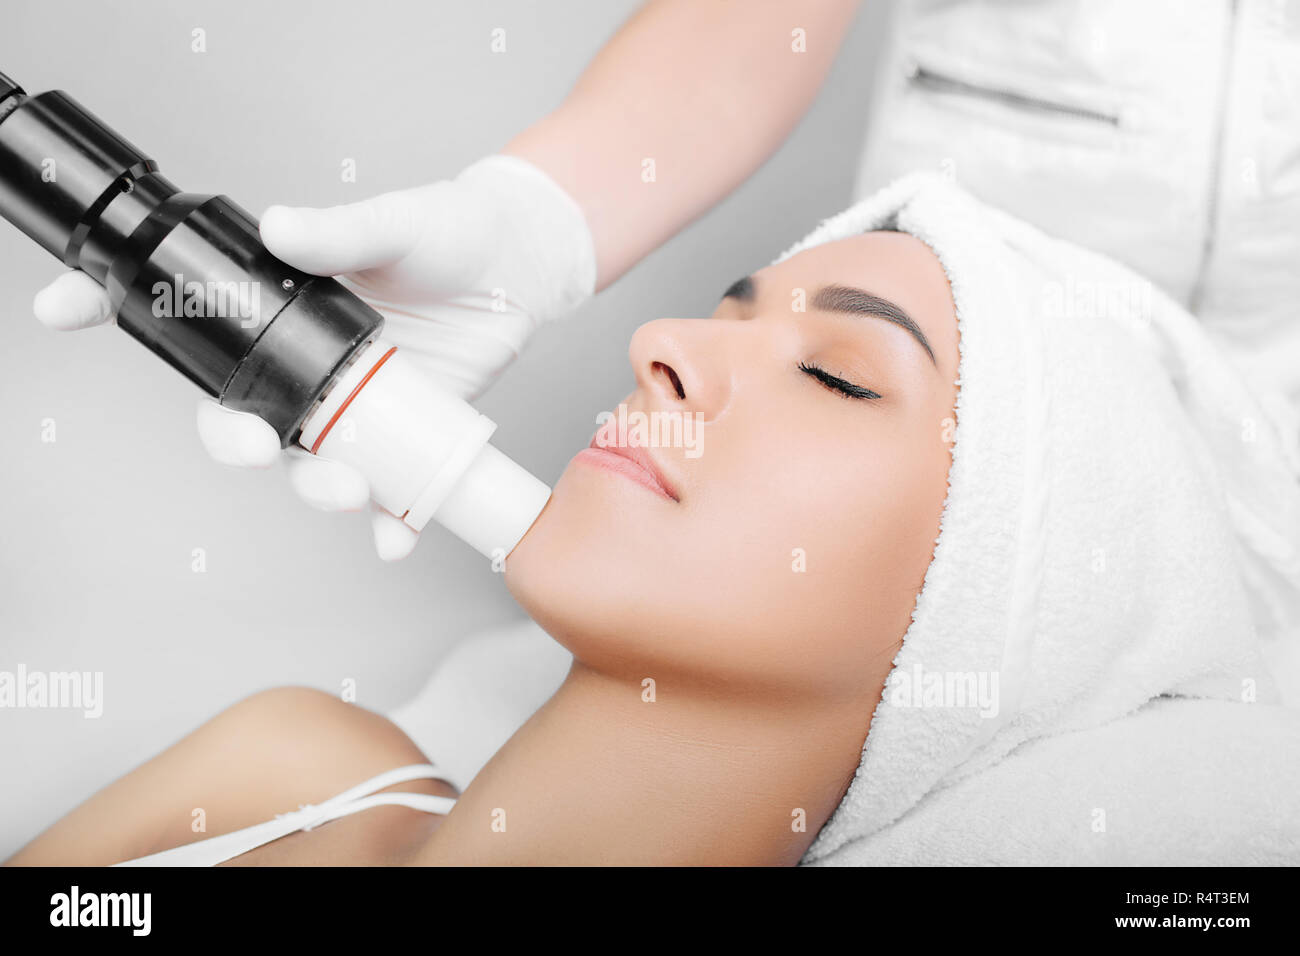 procedure wrinkle treatment , acoustic wave therapy on face - Stock Image